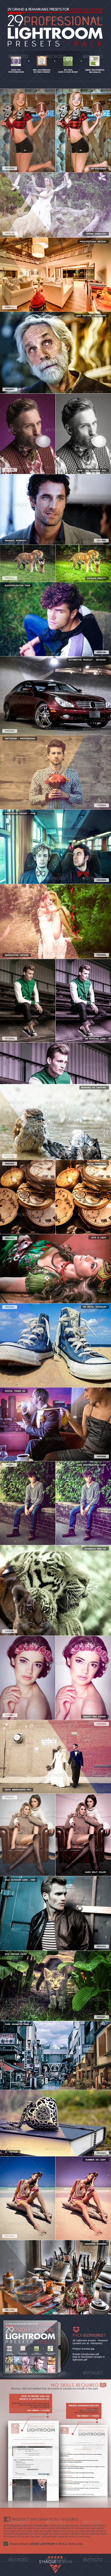 GraphicRiver 29 Professional Lightroom Presets Pack V.01 5669257